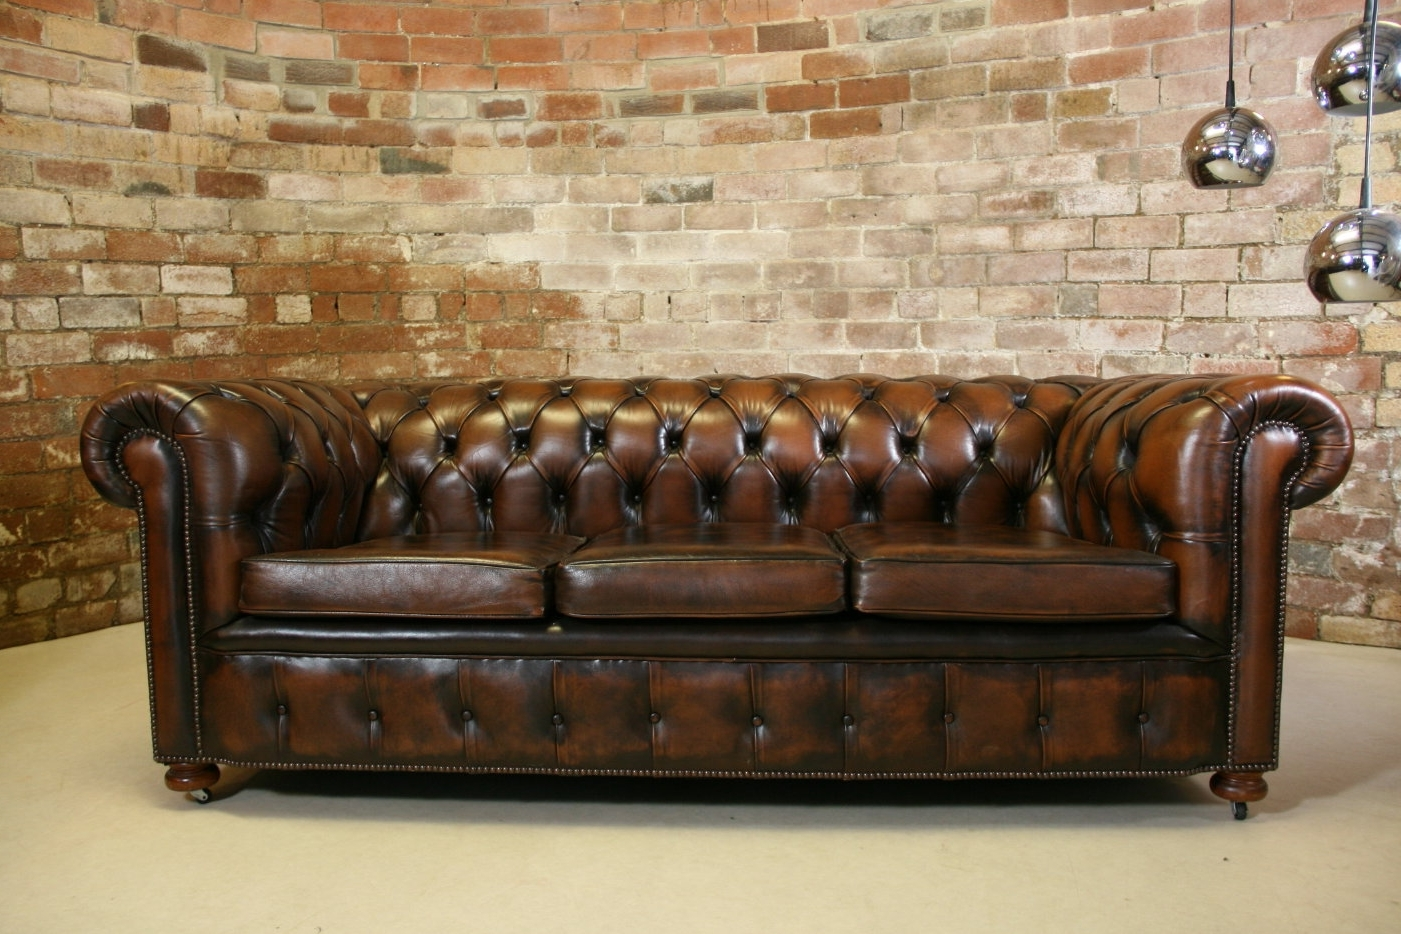 Preferred Leather Chesterfield Sofa — Fabrizio Design : Clean And Bright With Regard To Vintage Chesterfield Sofas (View 4 of 15)